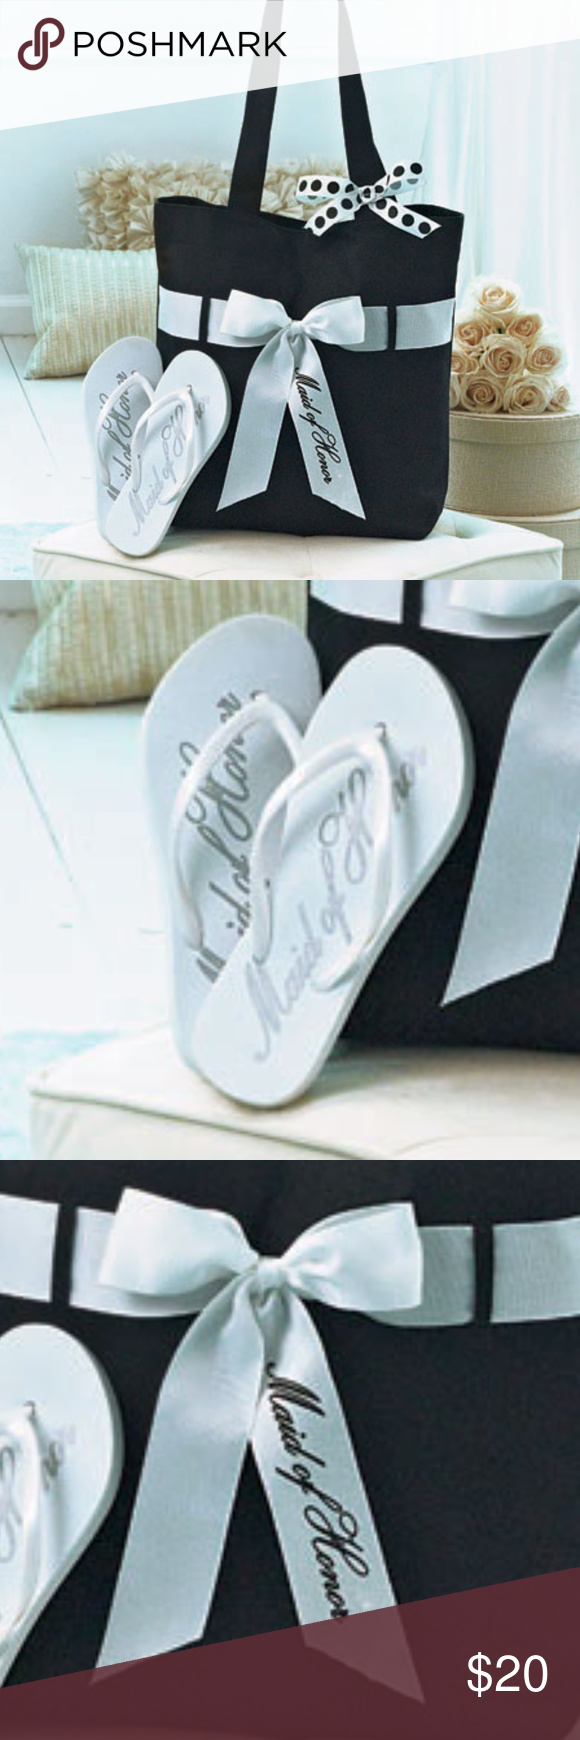 Wedding Tote And Flip Flop Set Made Of Honor Only